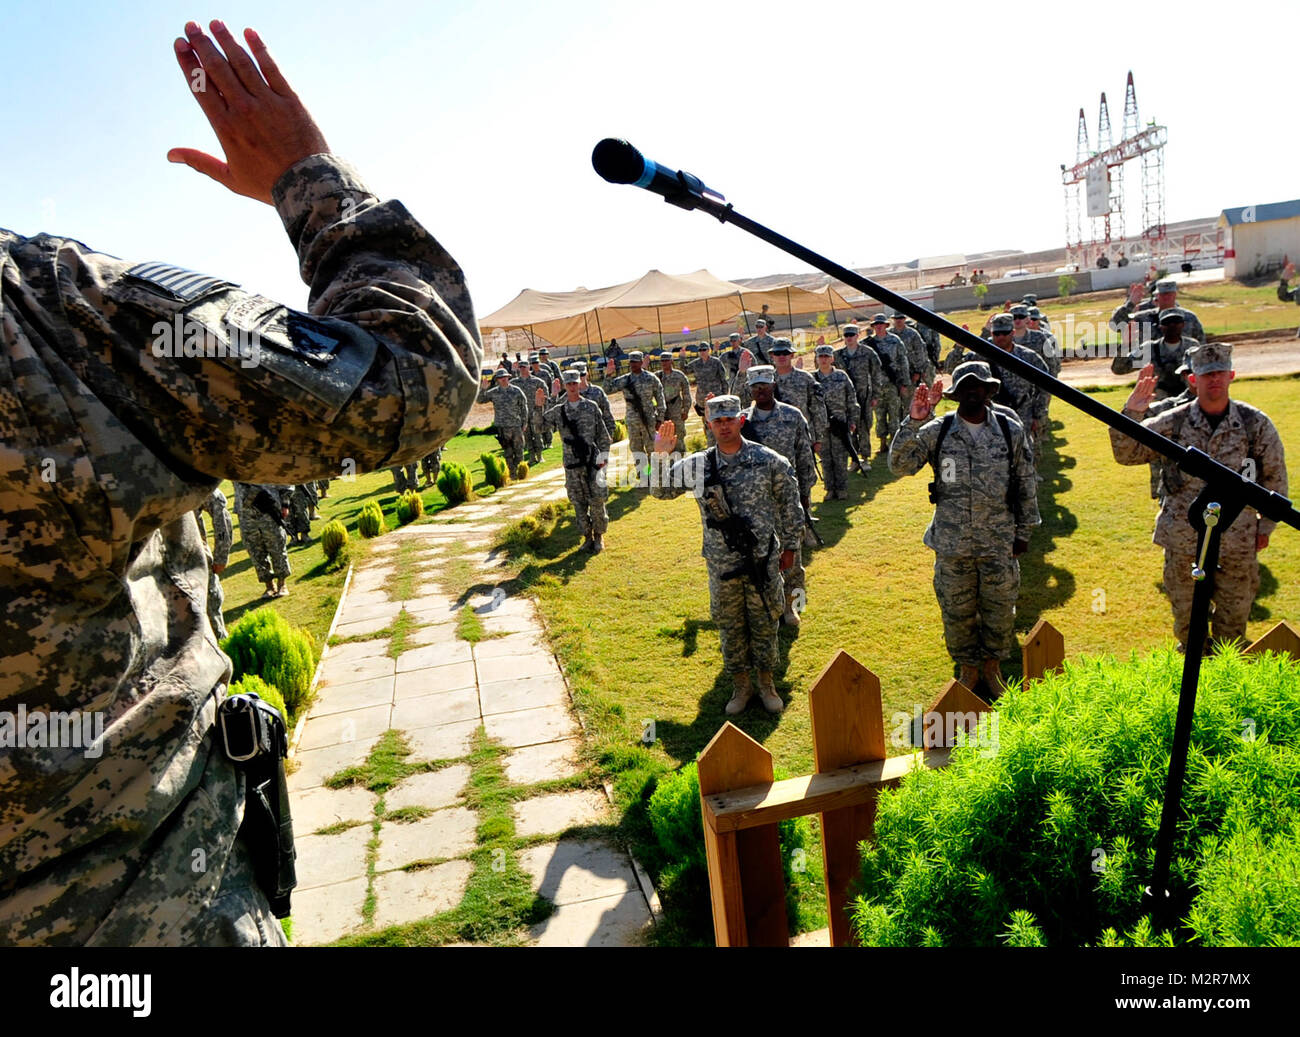 With right hands raised, 126 U.S. service members rehearse prior to a mass re-enlistment ceremony at Al Asad Air Stock Photo